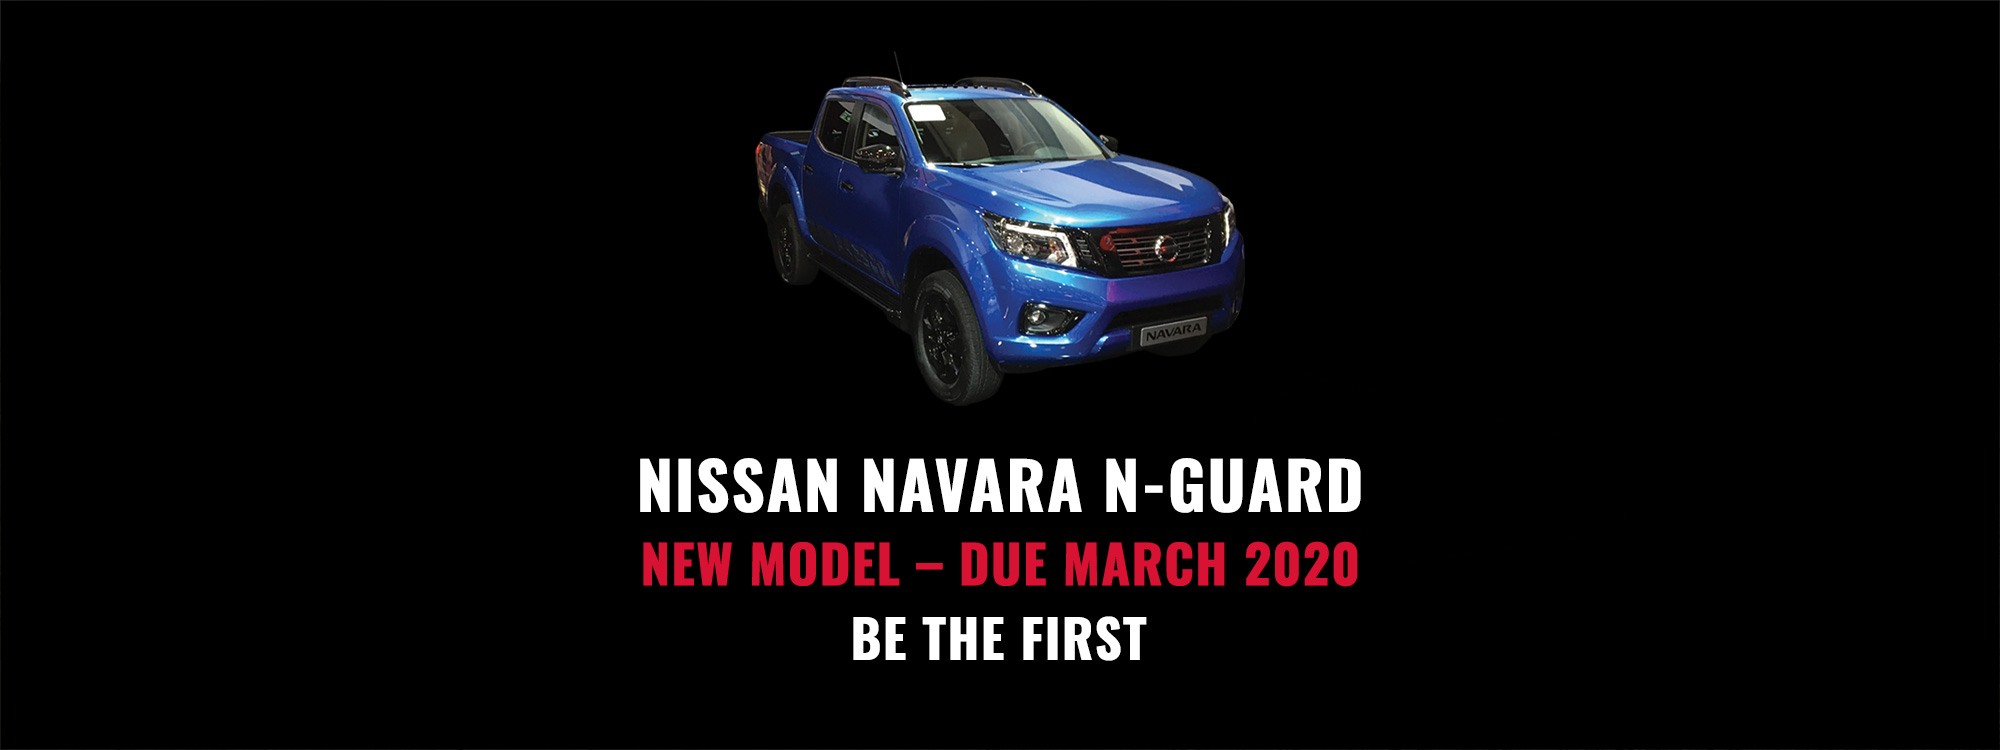 New Nissan Navara N-Guard – March 2020